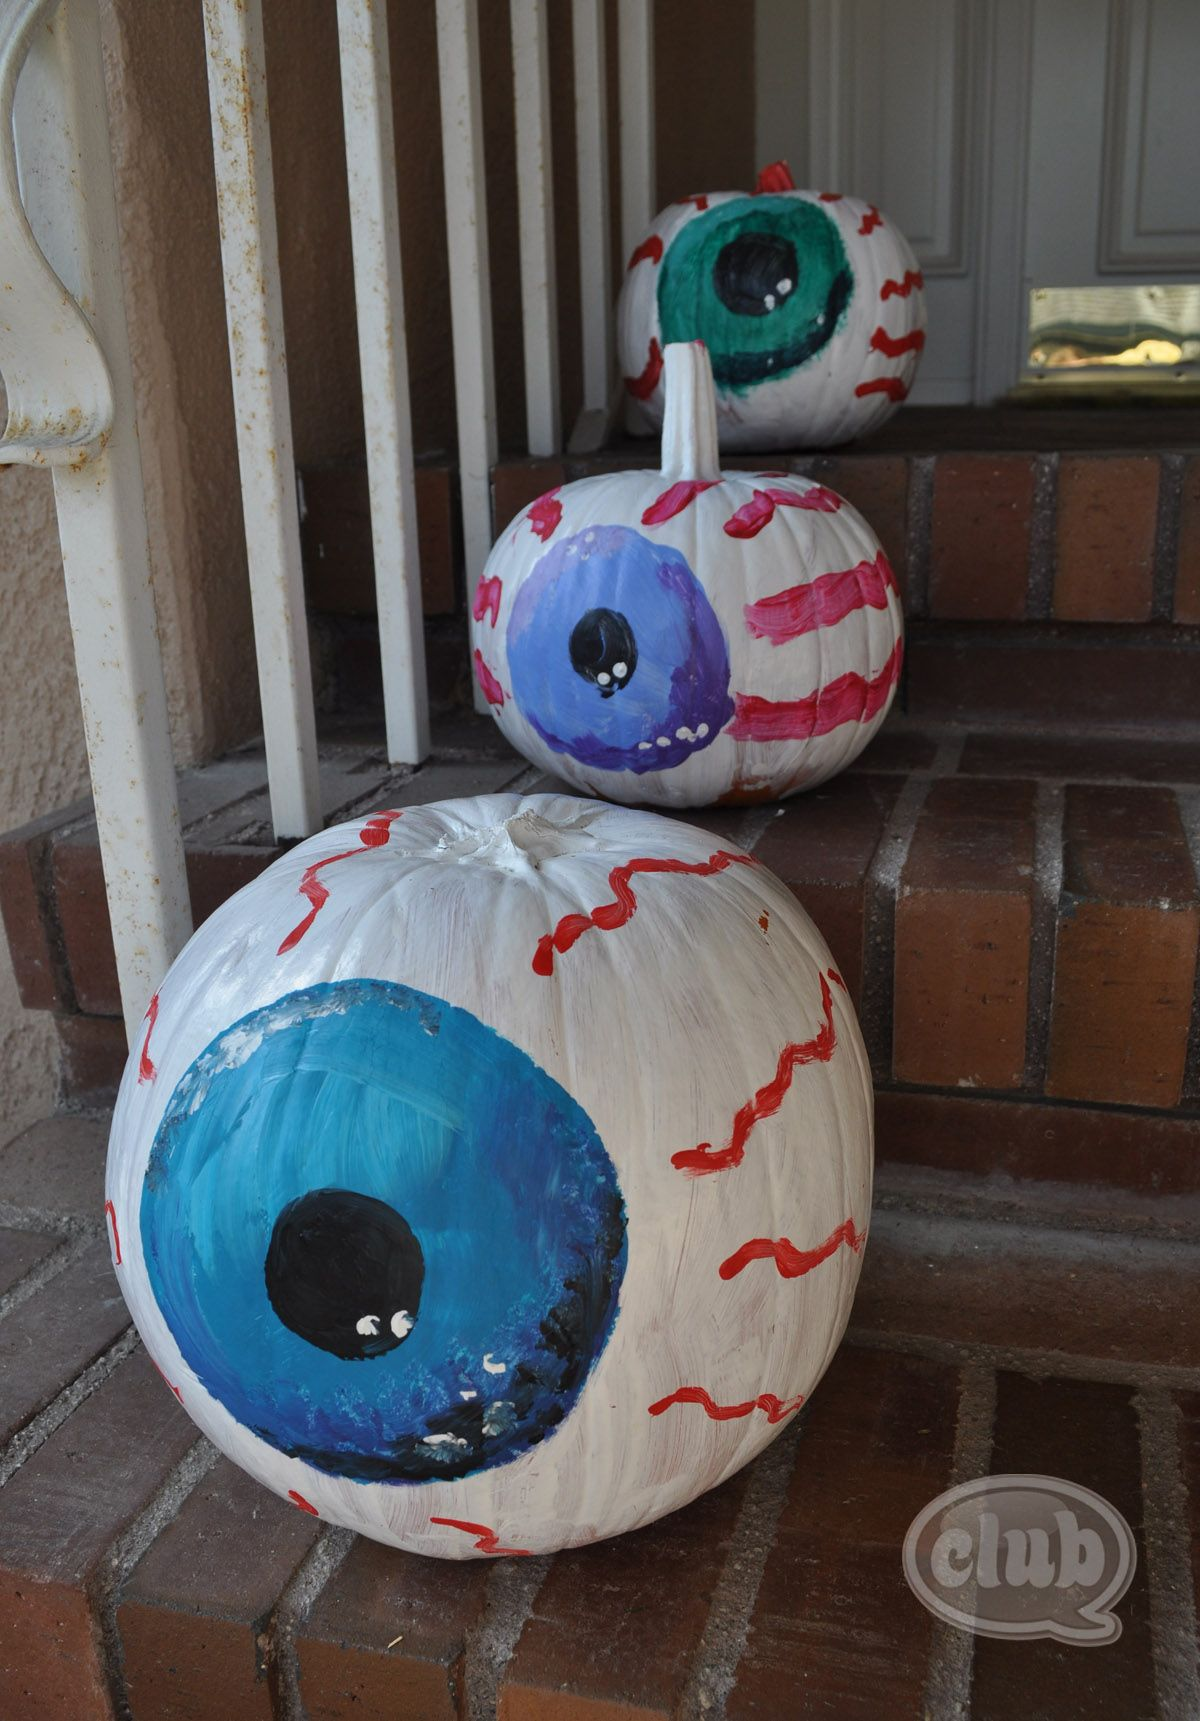 eyeball painted pumpkins http://club.chicacircle/eyeball